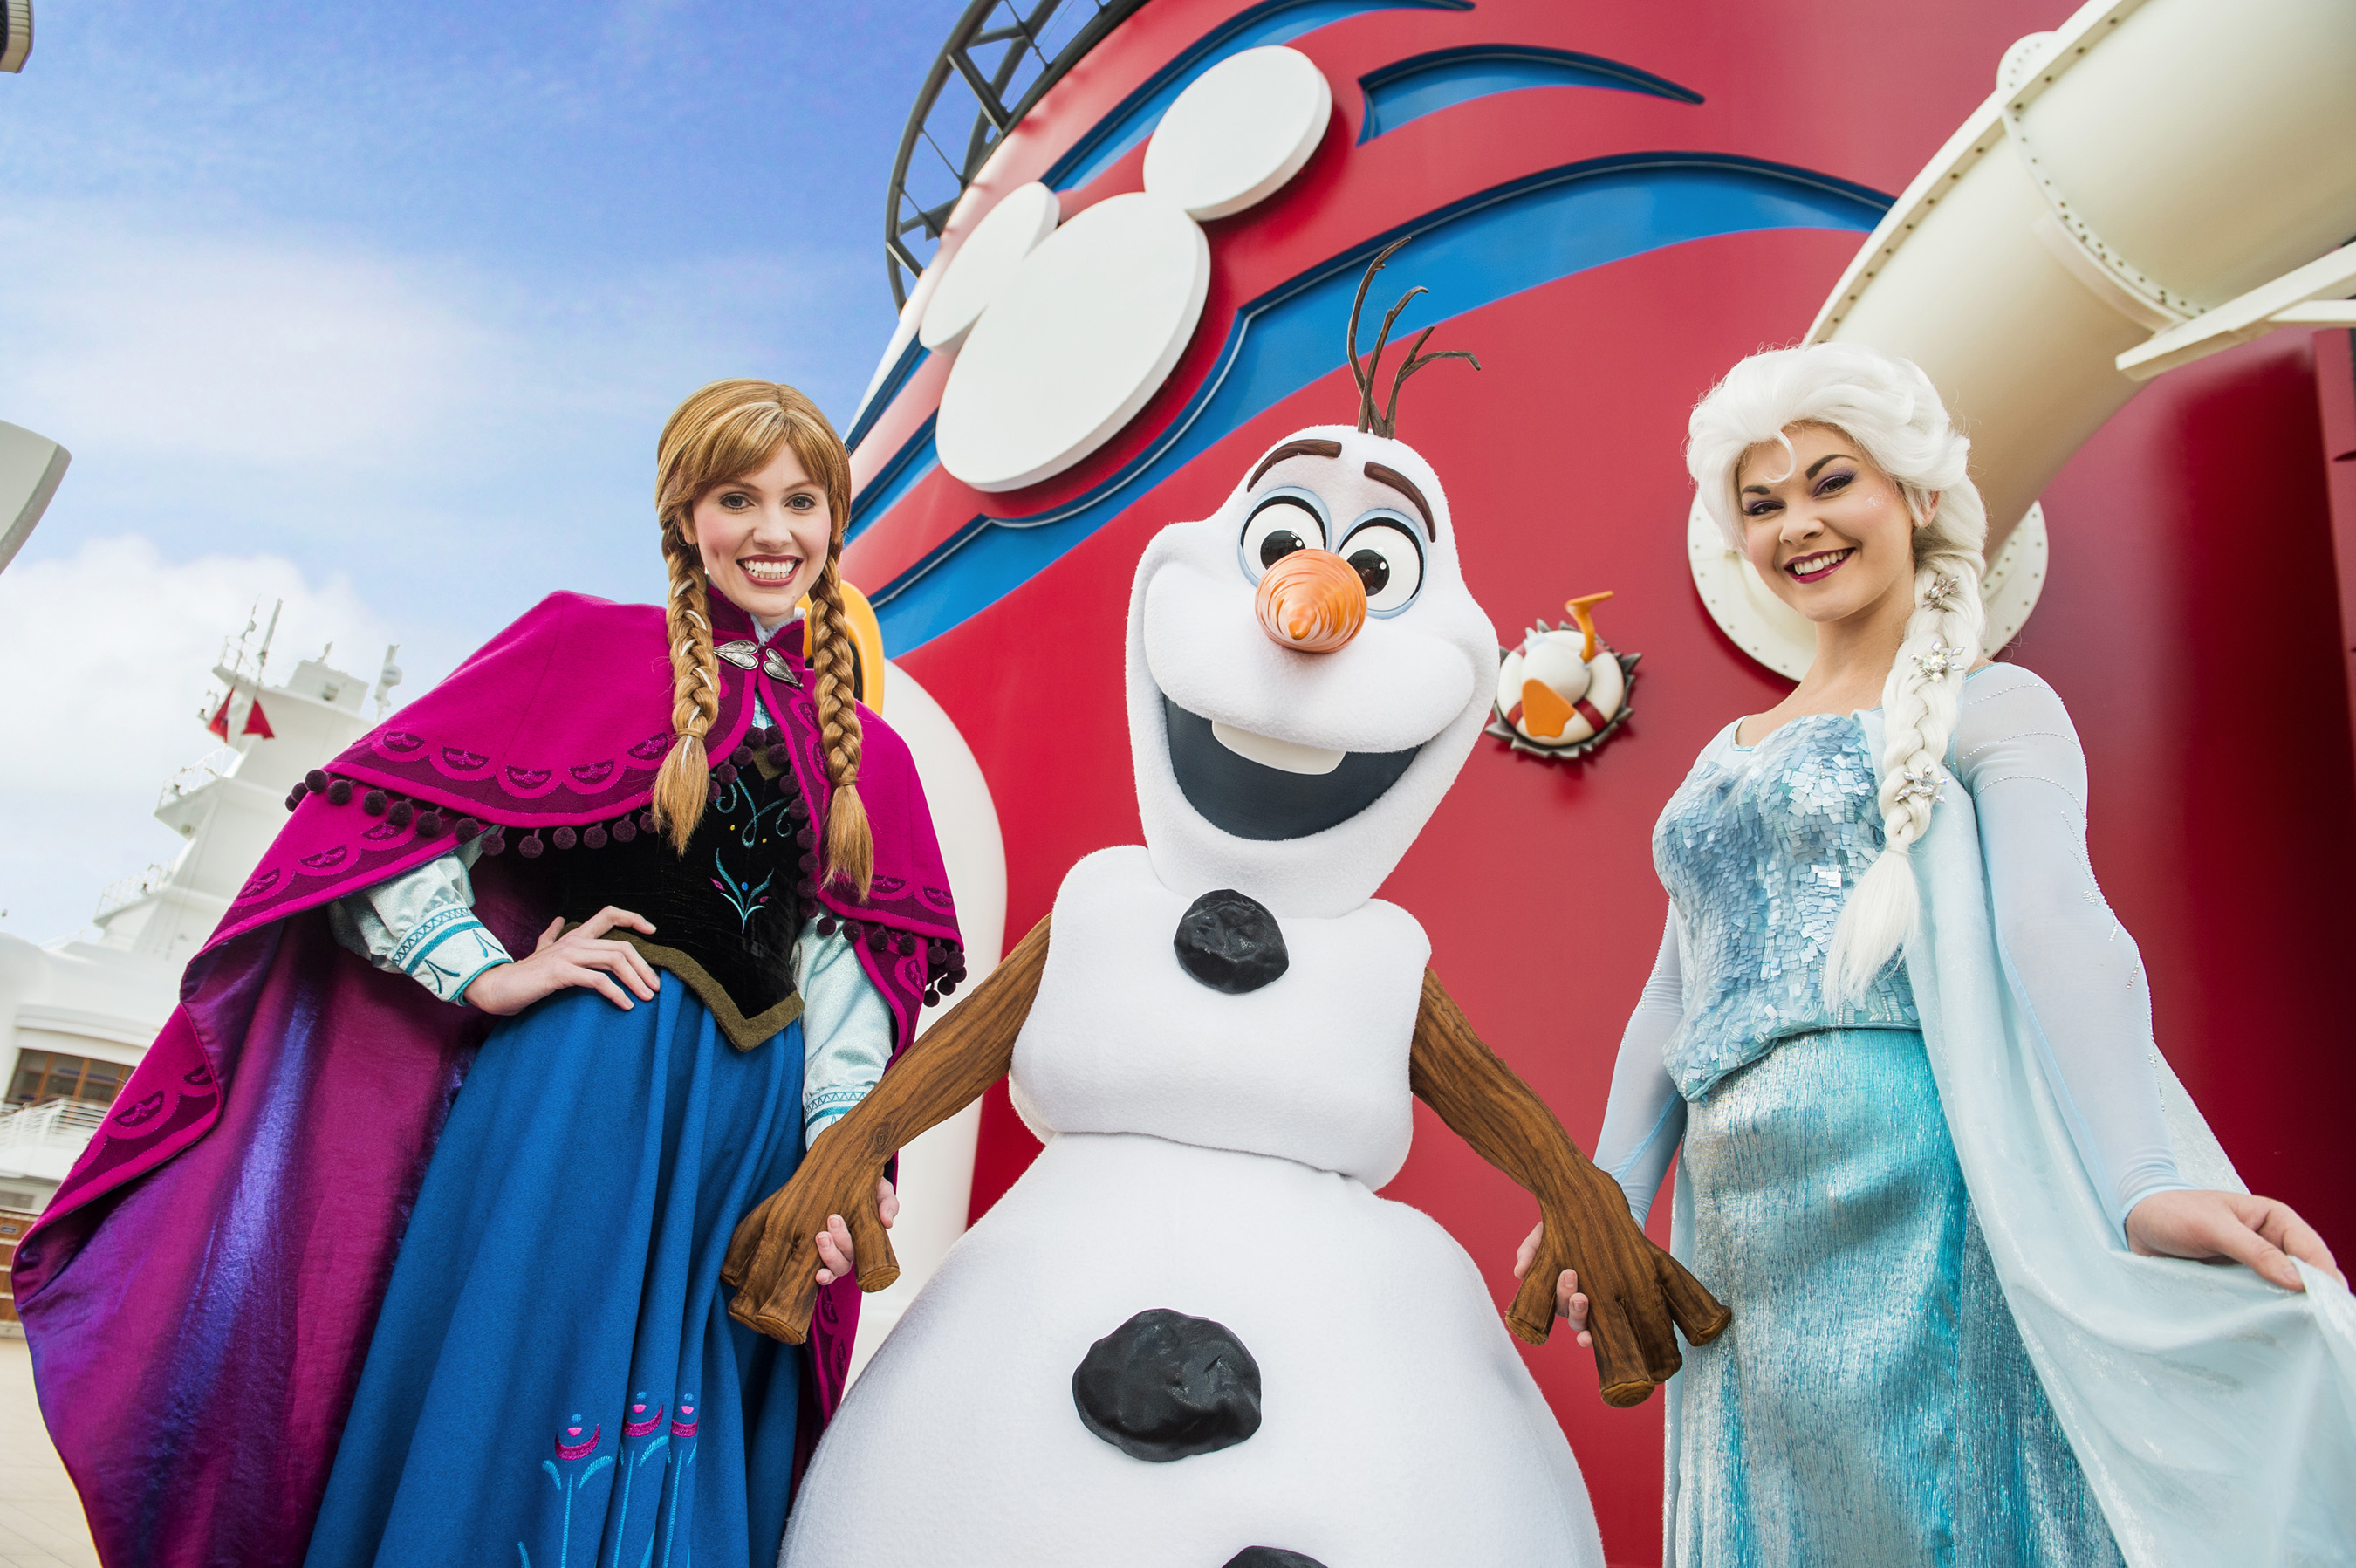 Land of Frozen en los Cruceros de Disney - Anna, Elsa and Olaf